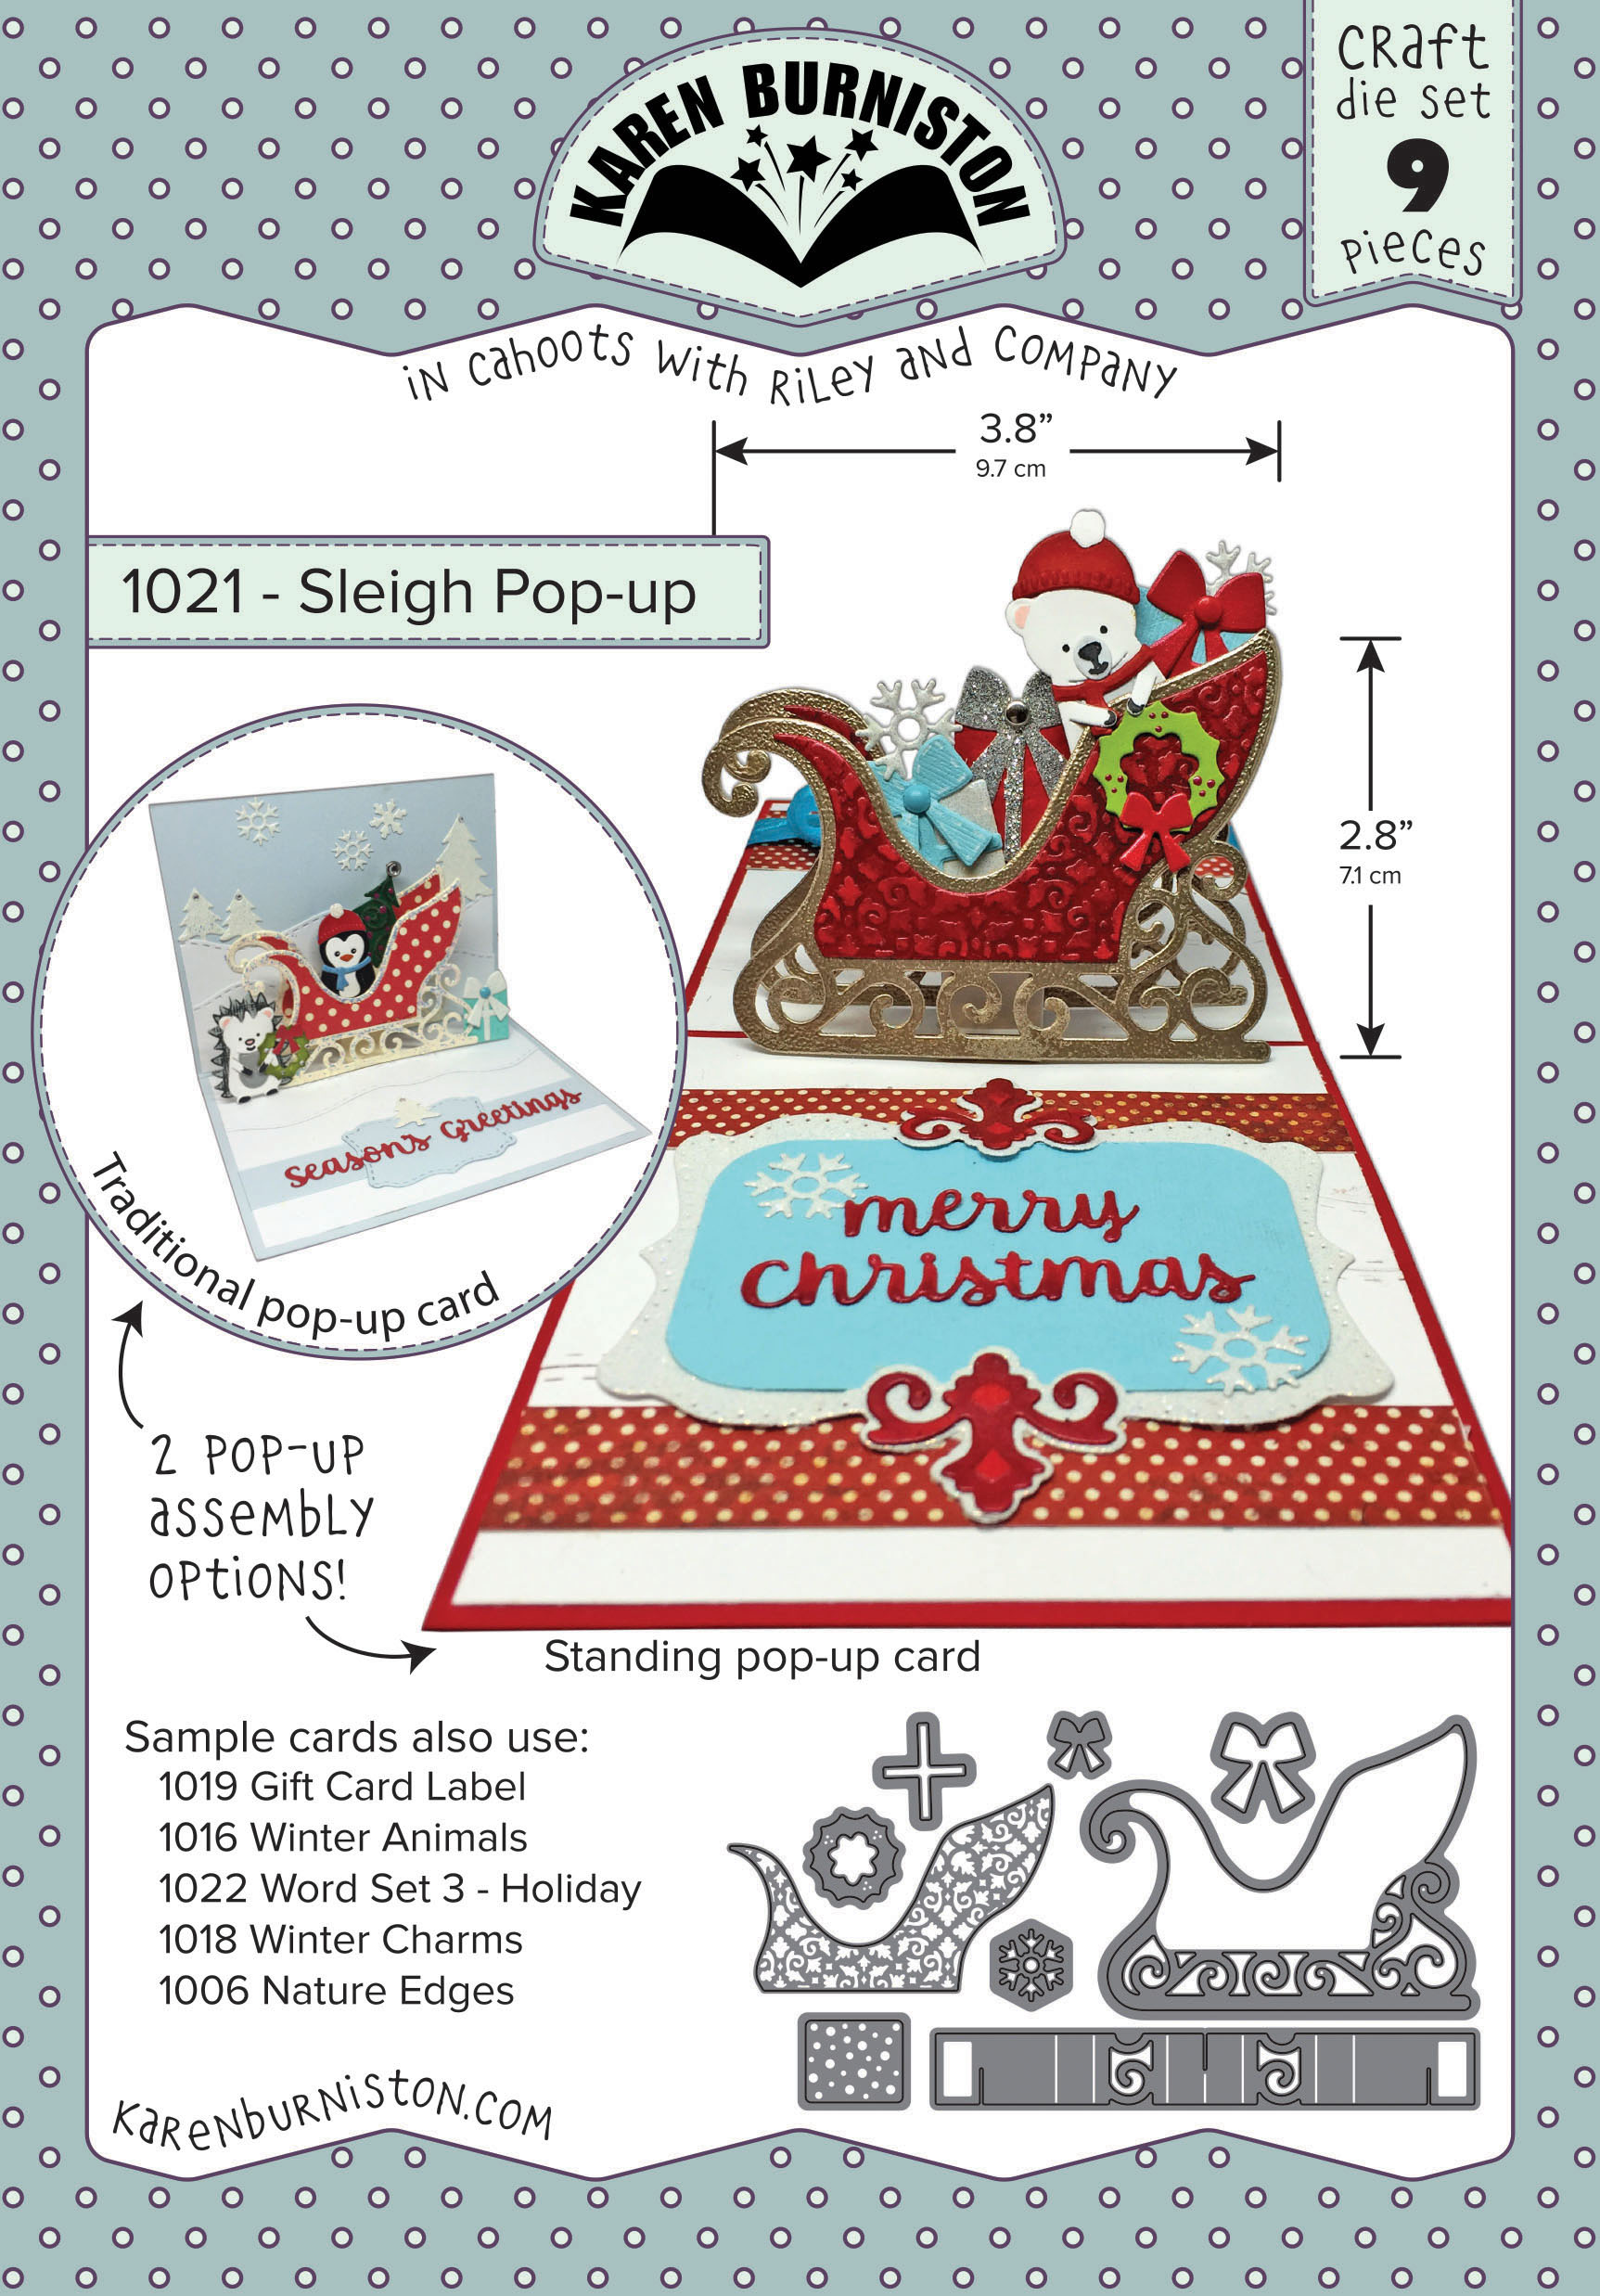 1021-sleigh-pop-up.jpg